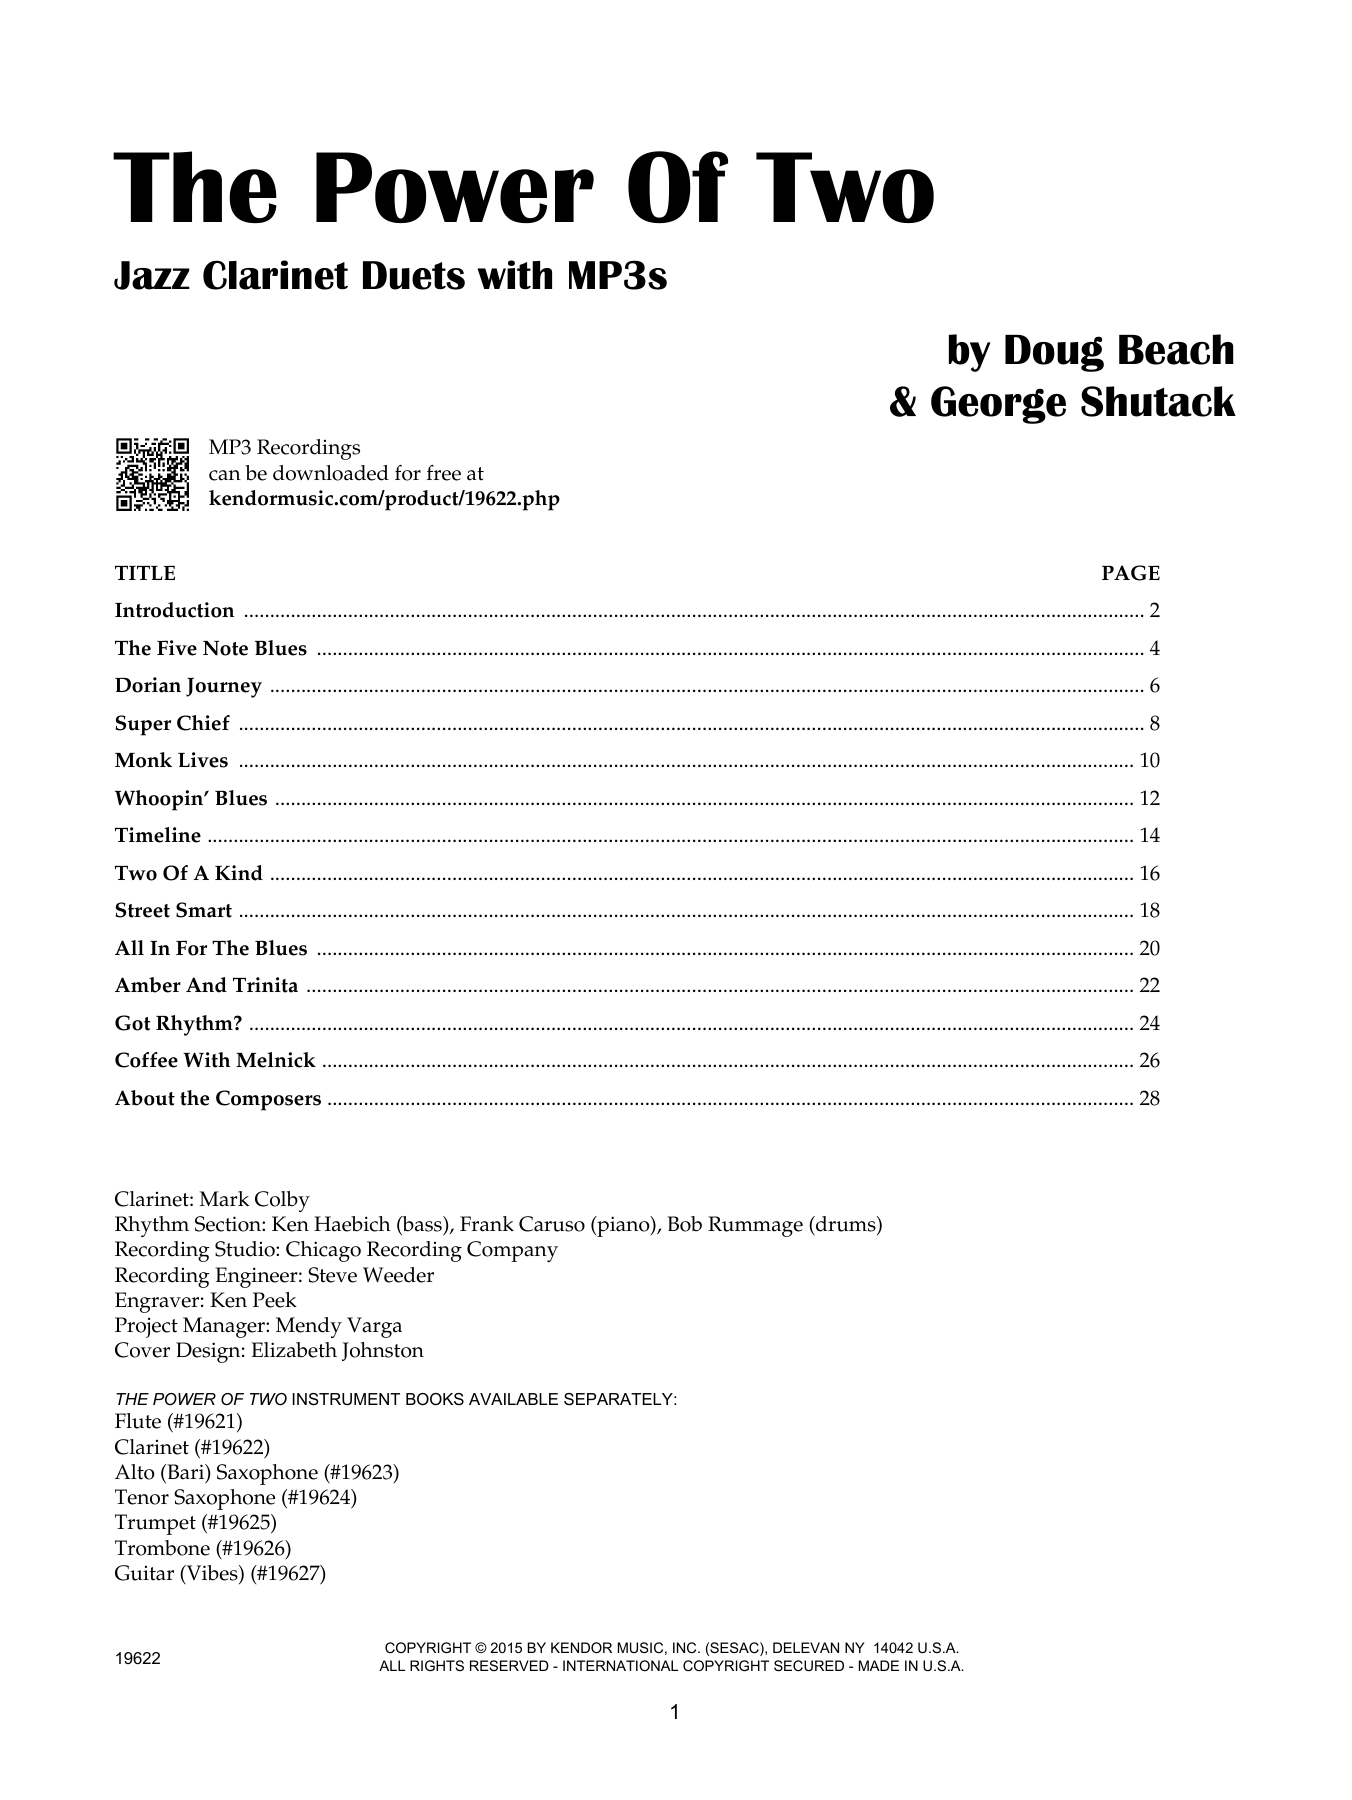 Doug Beach The Power Of Two - Clarinet sheet music notes and chords